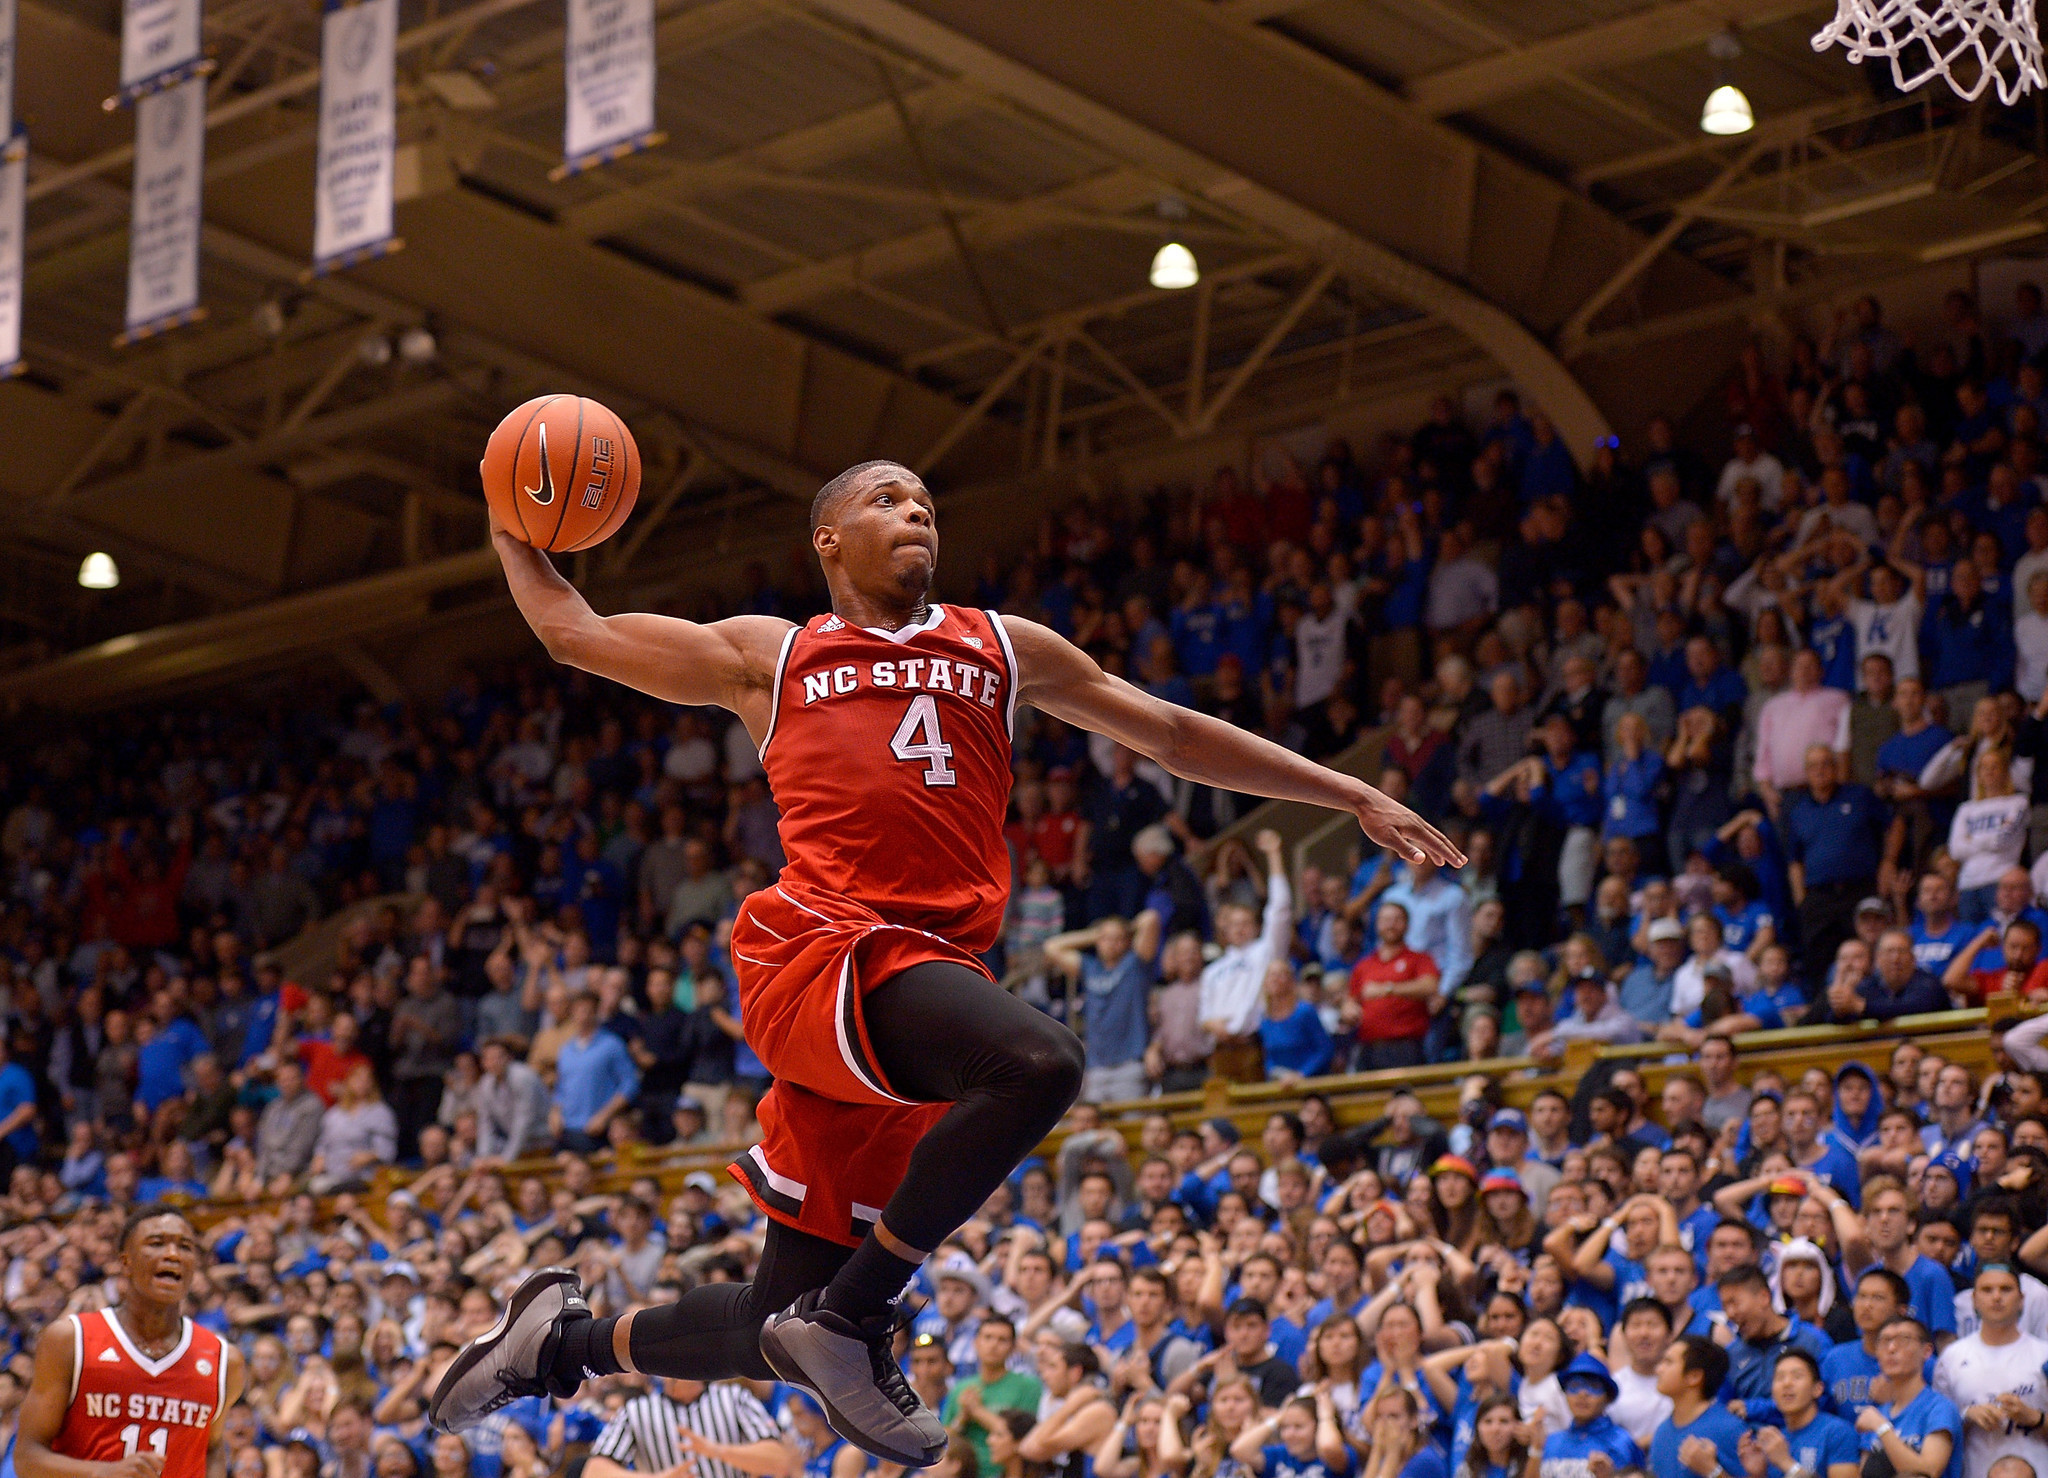 College basketball: NC State gets first win at Duke in 22 years - LA Times